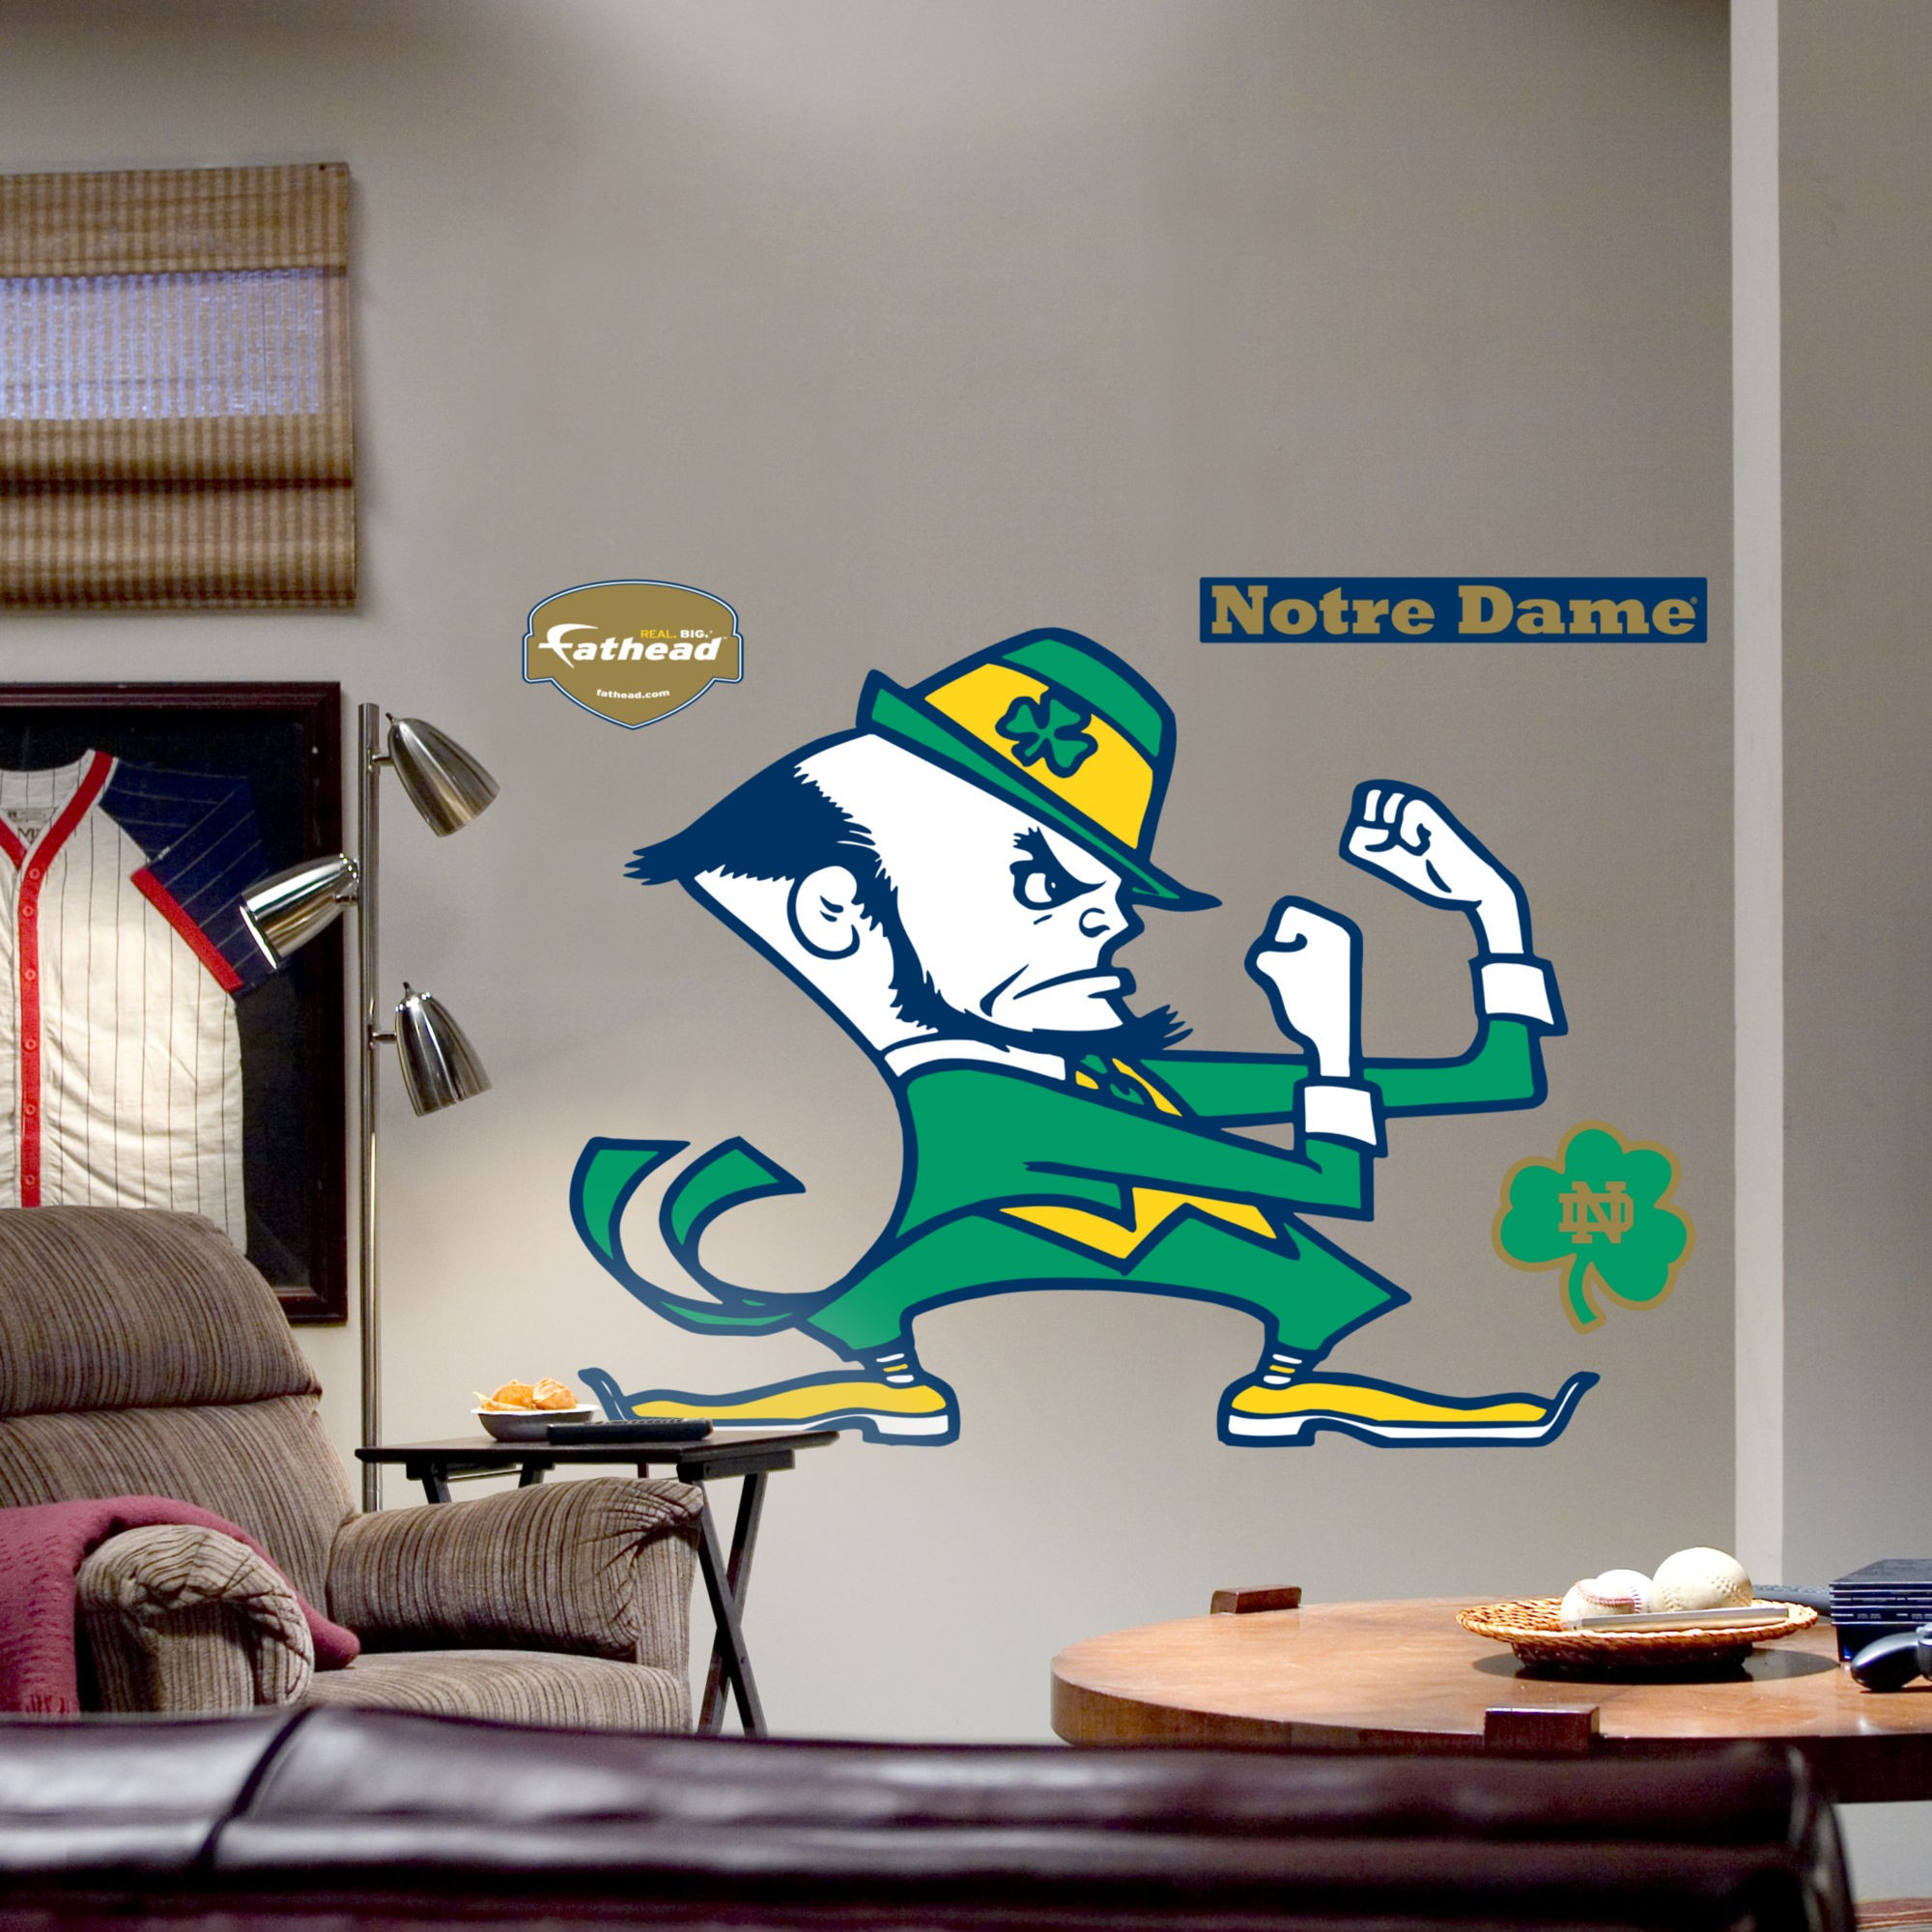 Notre dame merchandise   Fighting Irish logo apparel and other 2000x2000